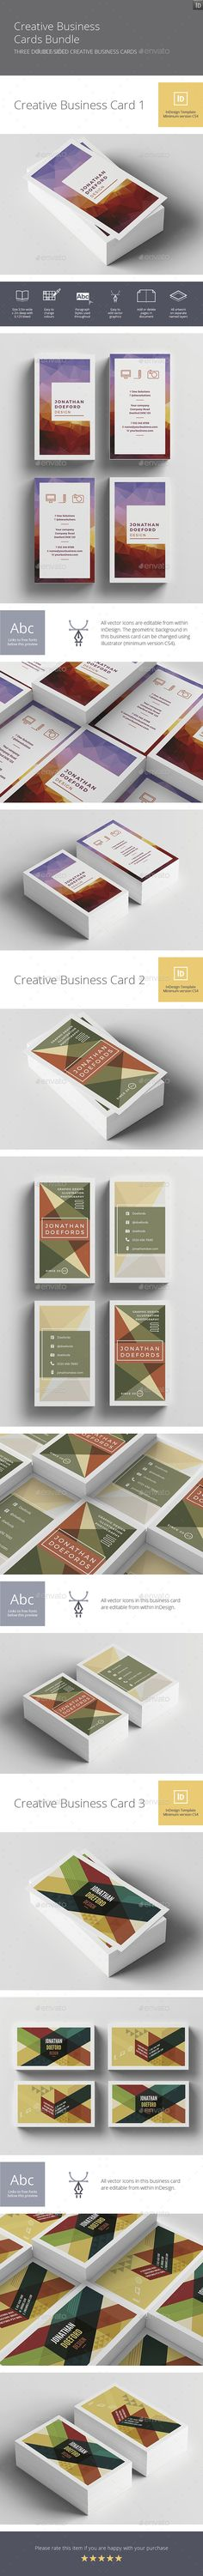 341 best creative business cards images on pinterest business